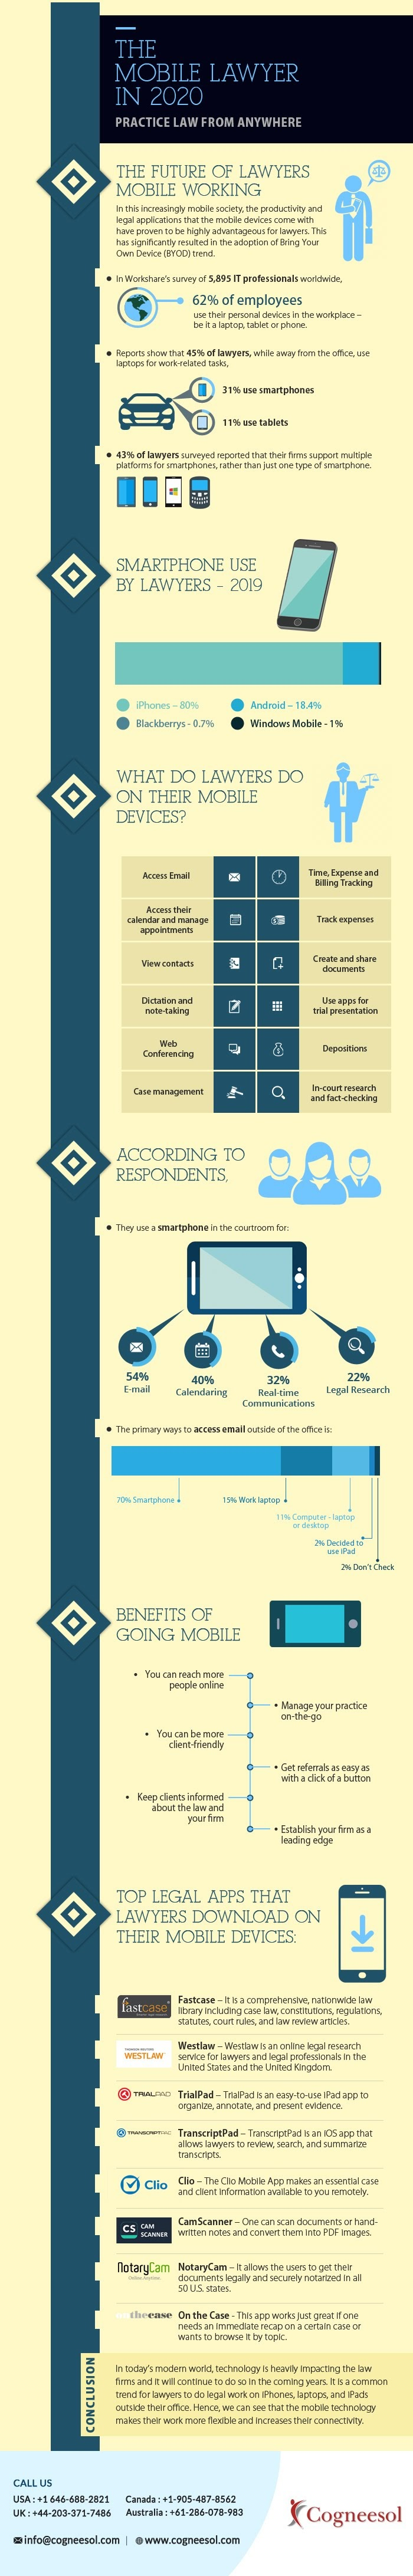 The Mobile Lawyer in 2020 #infographic